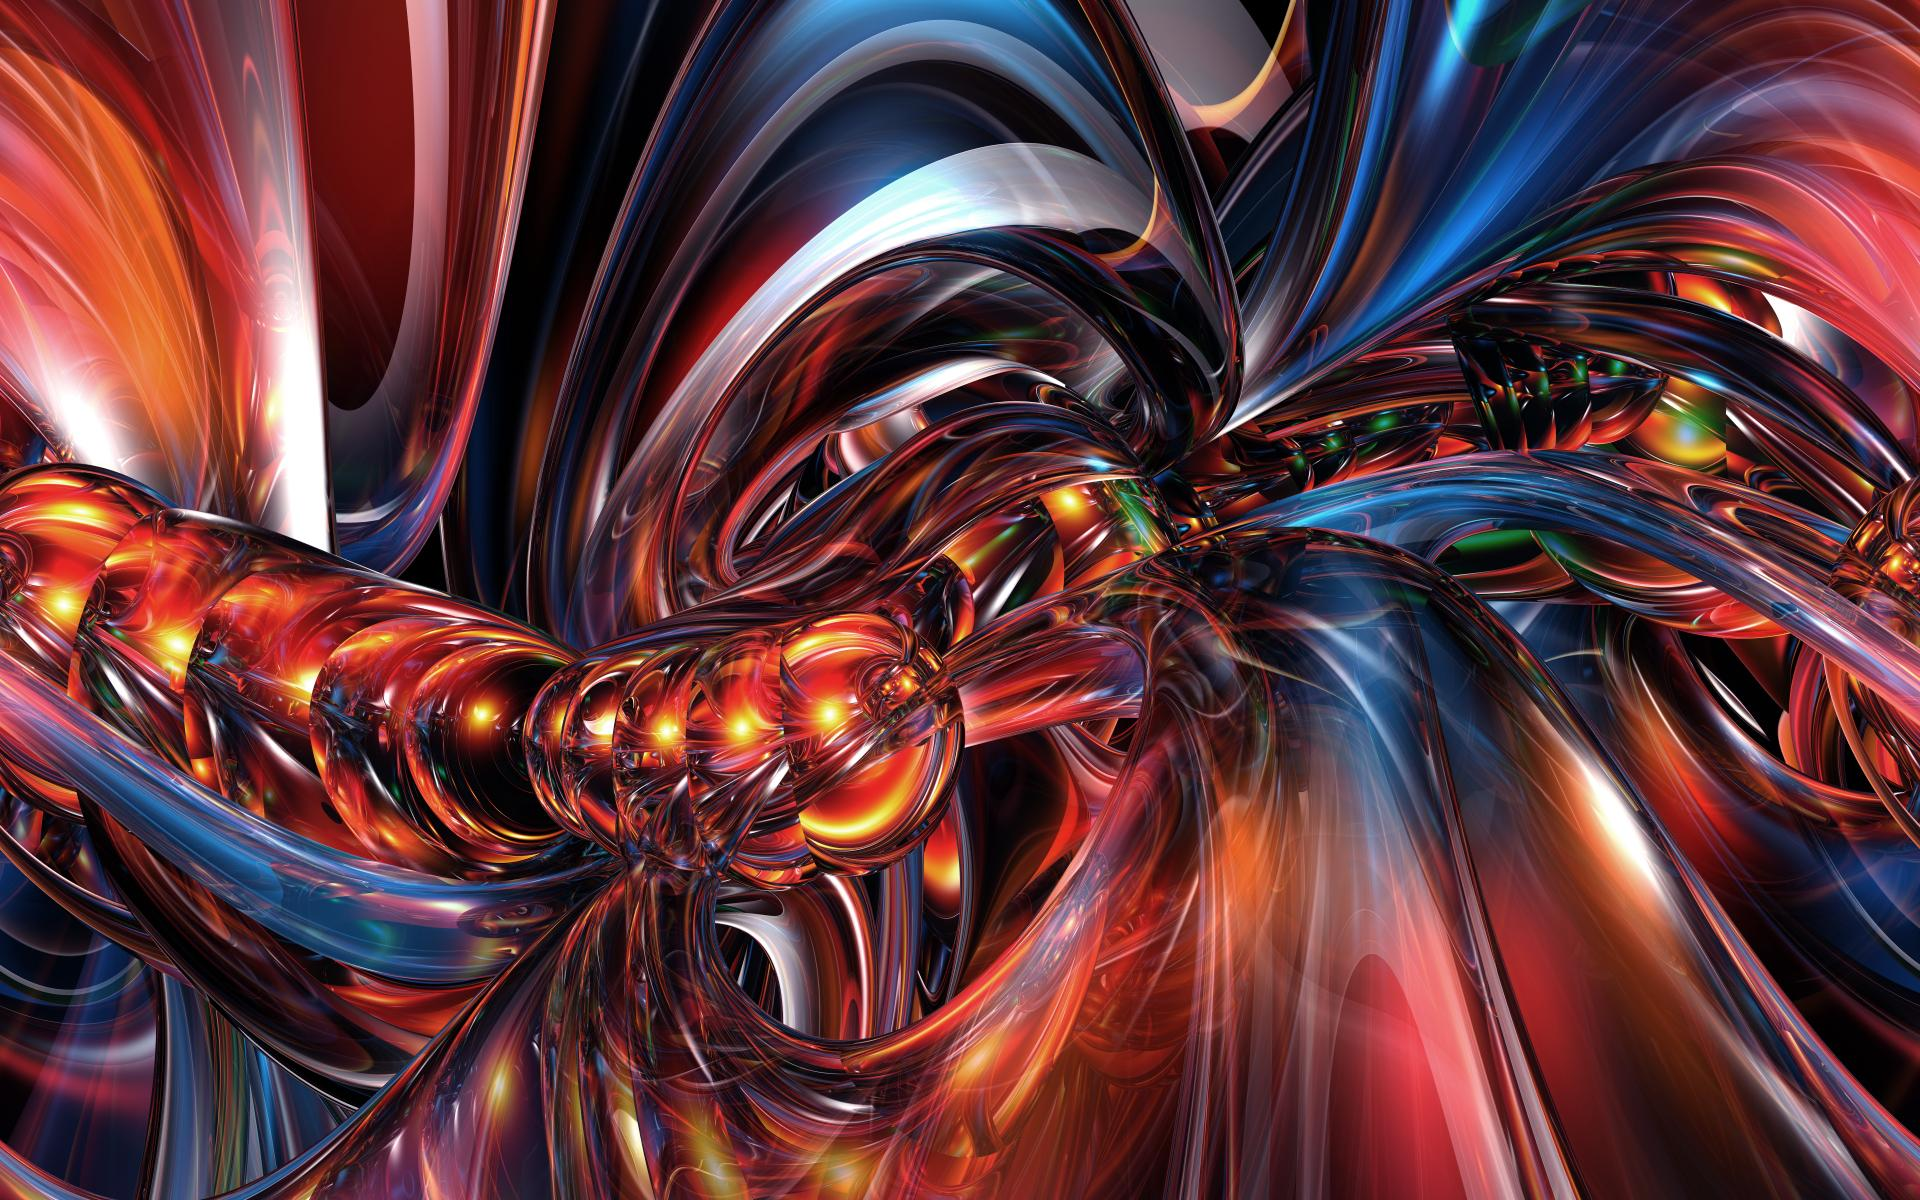 Best 3d Animated Wallpapers For Android Wallpaper Fractal Pattern Fractals Bright Hd